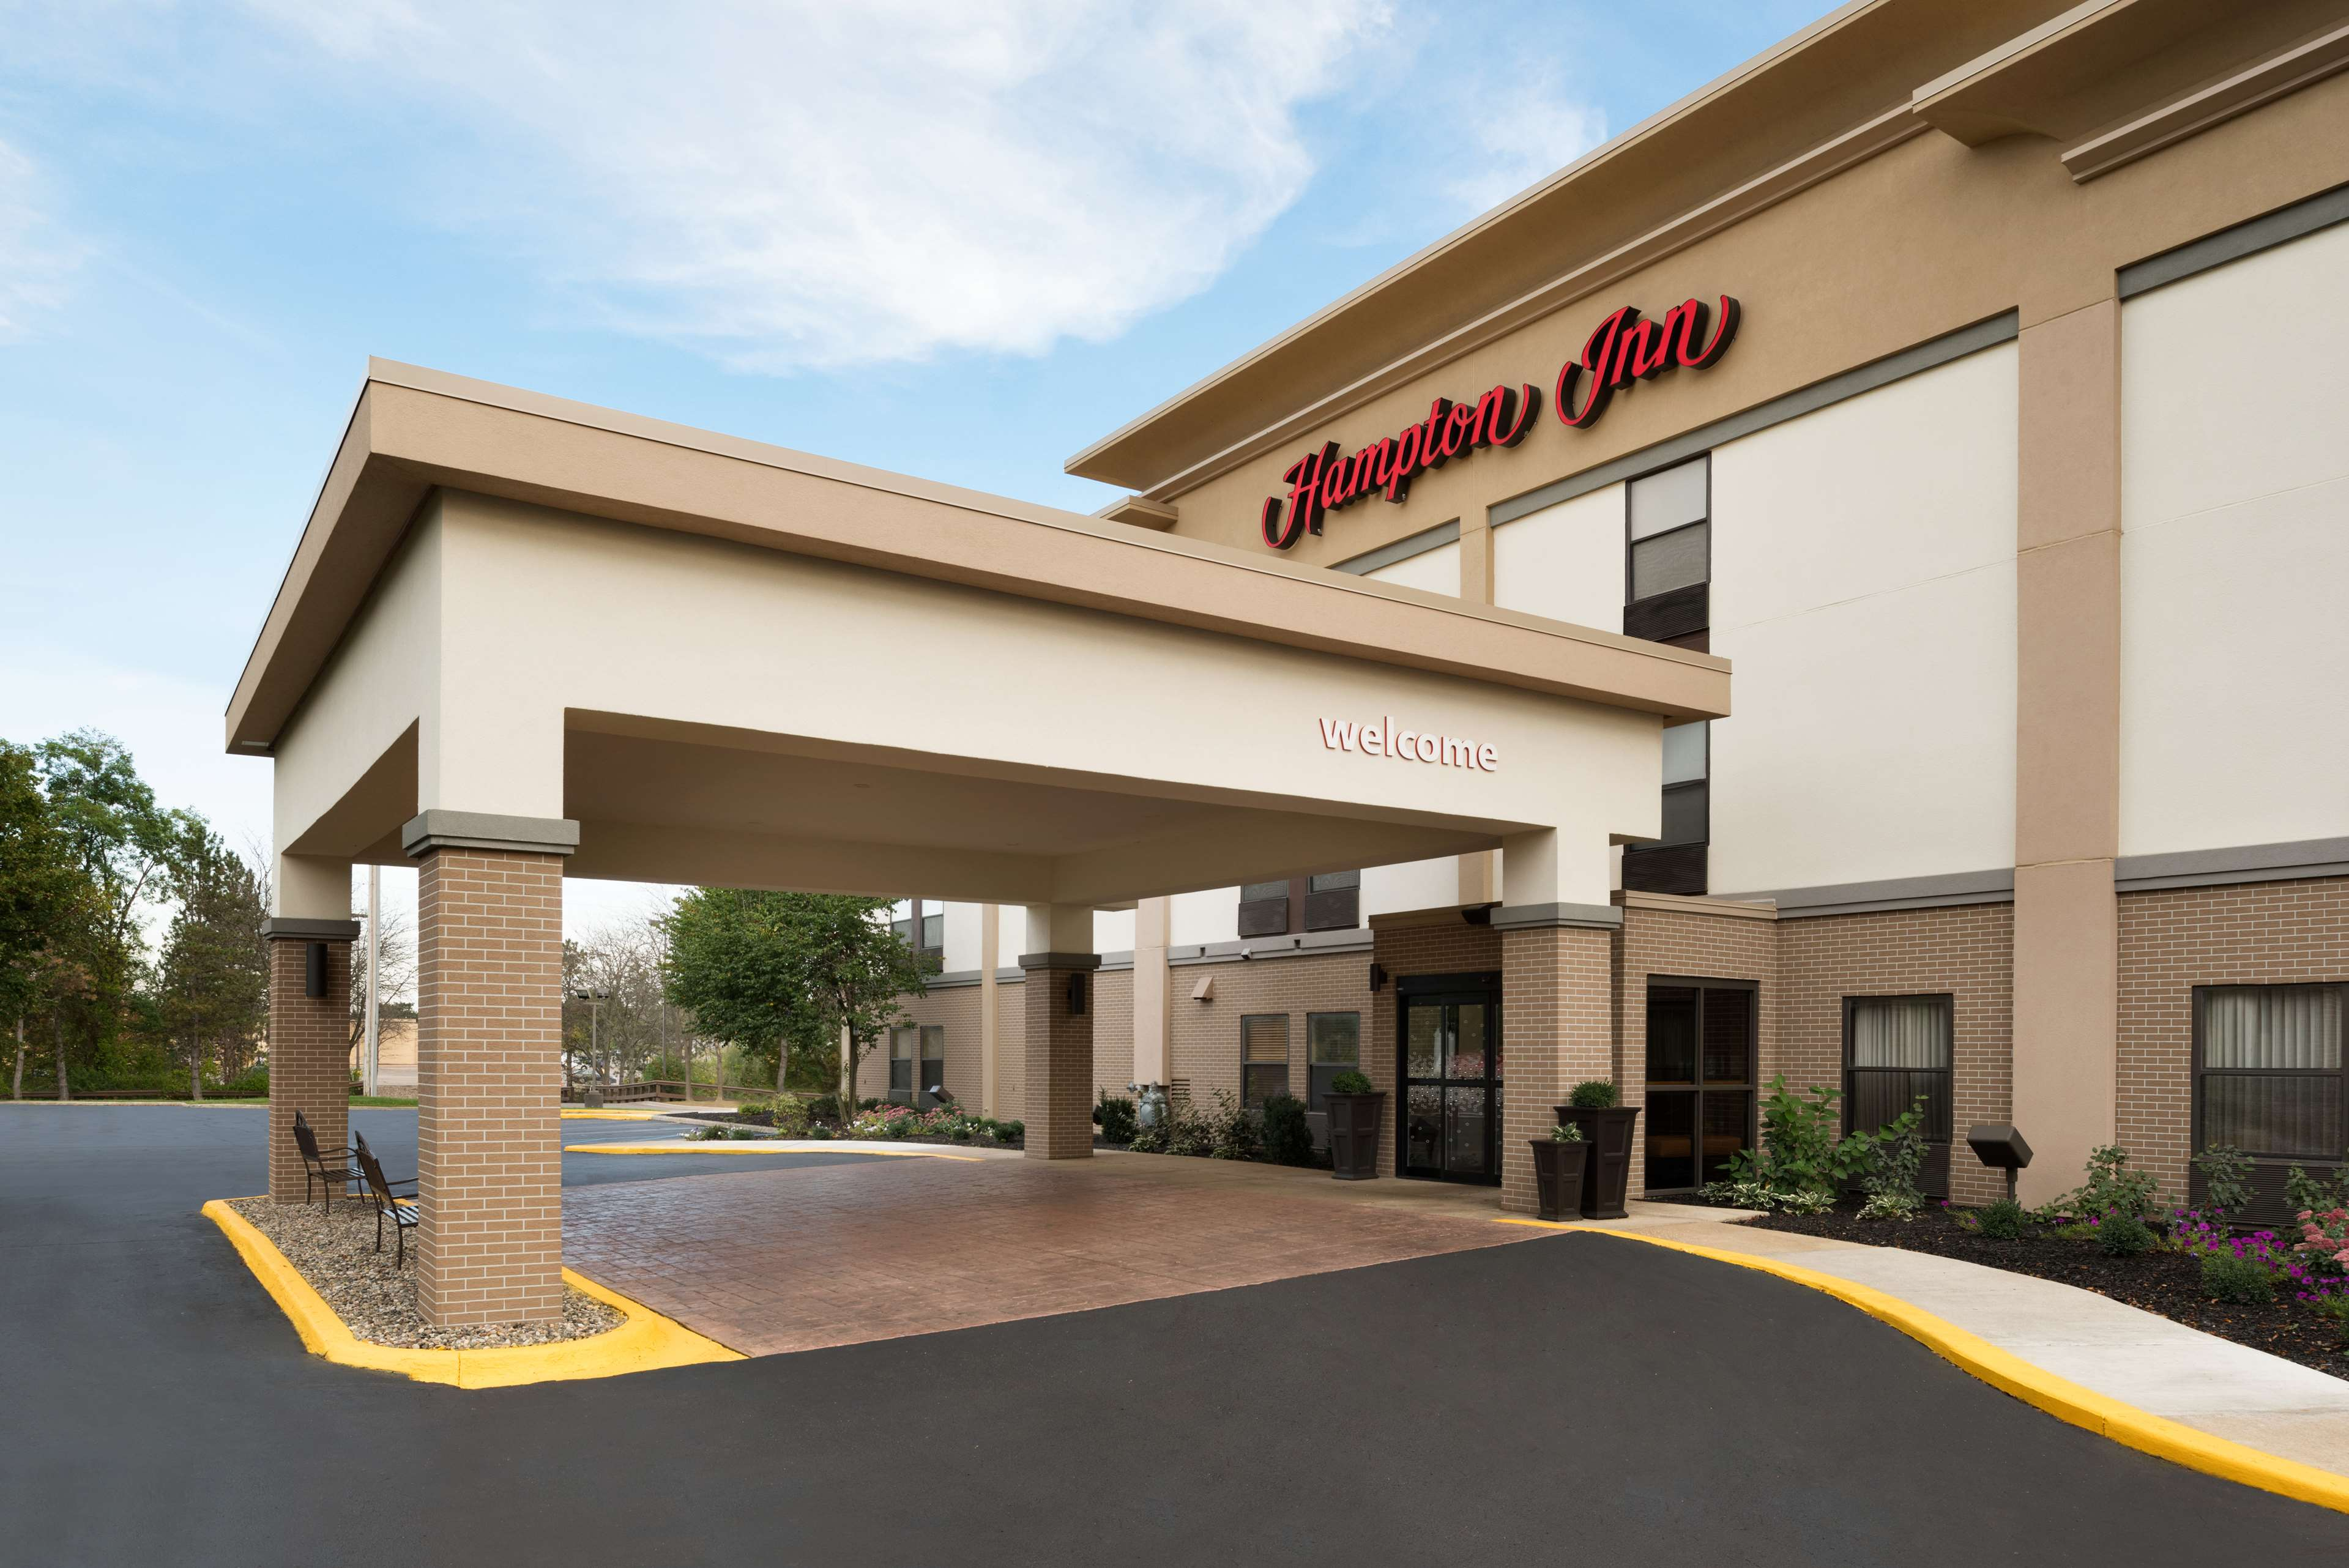 Hampton Inn Battle Creek image 1